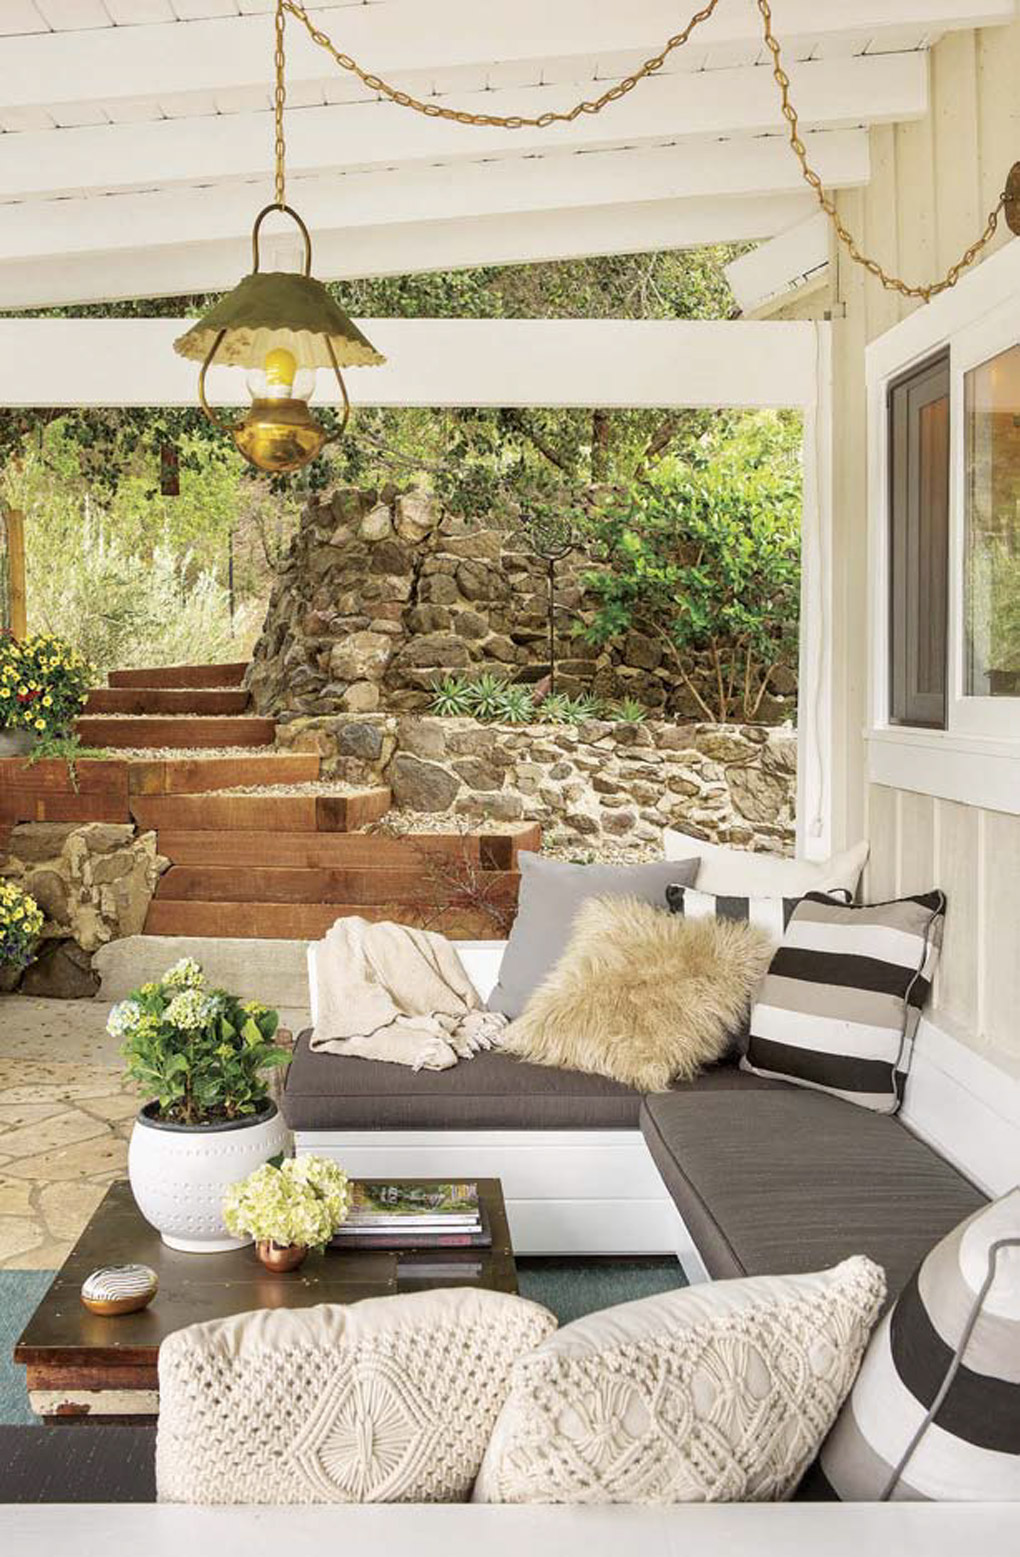 Hanging brass chained vintage light over an outdoor sectional with a vintage wooden coffee table and stone made walls with wooden steps in the background.